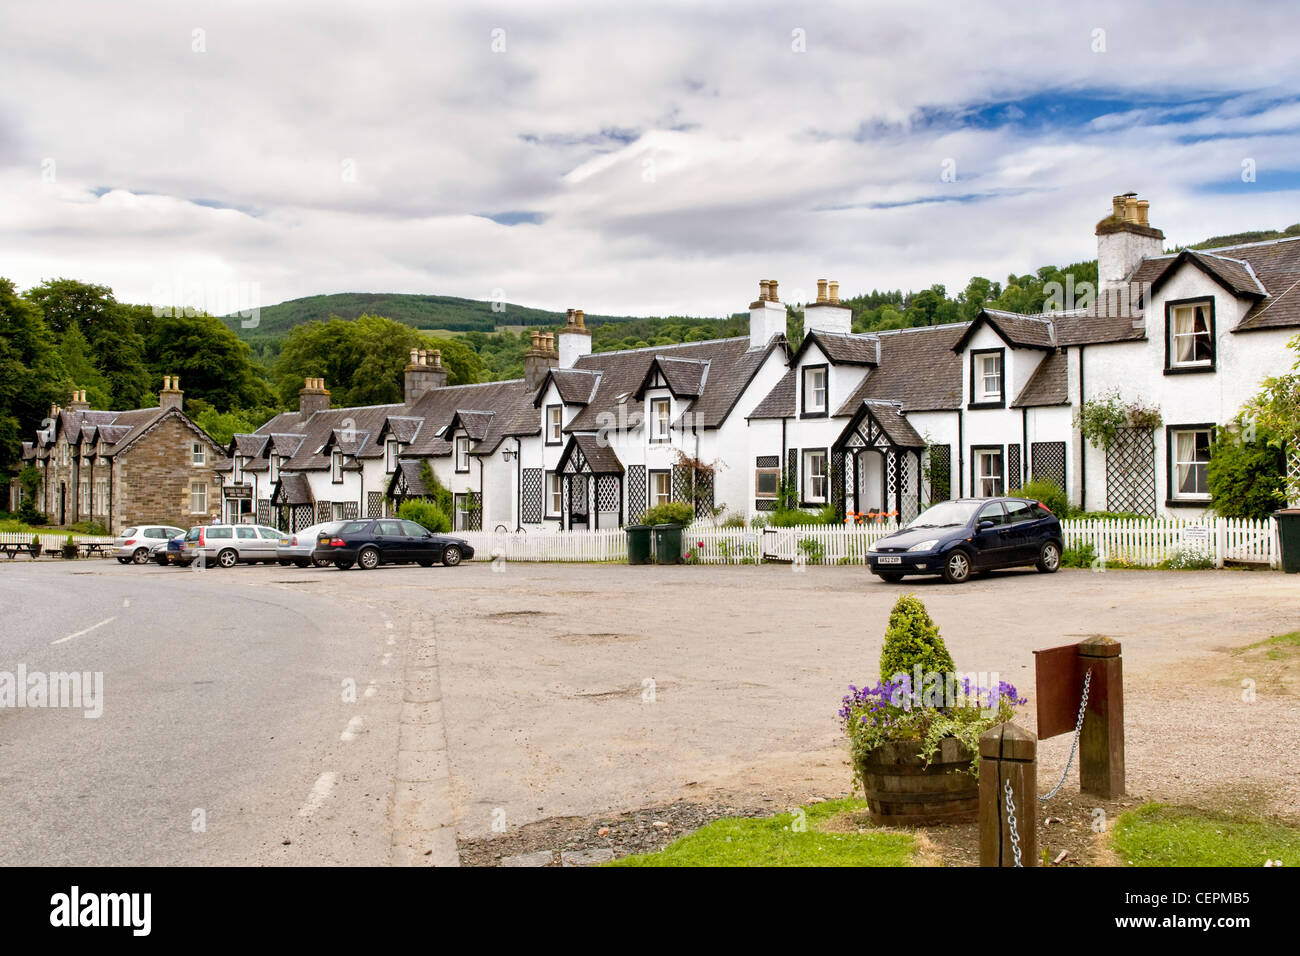 The Scottish village of Kenmore,Tayside taken in summer - Stock Image